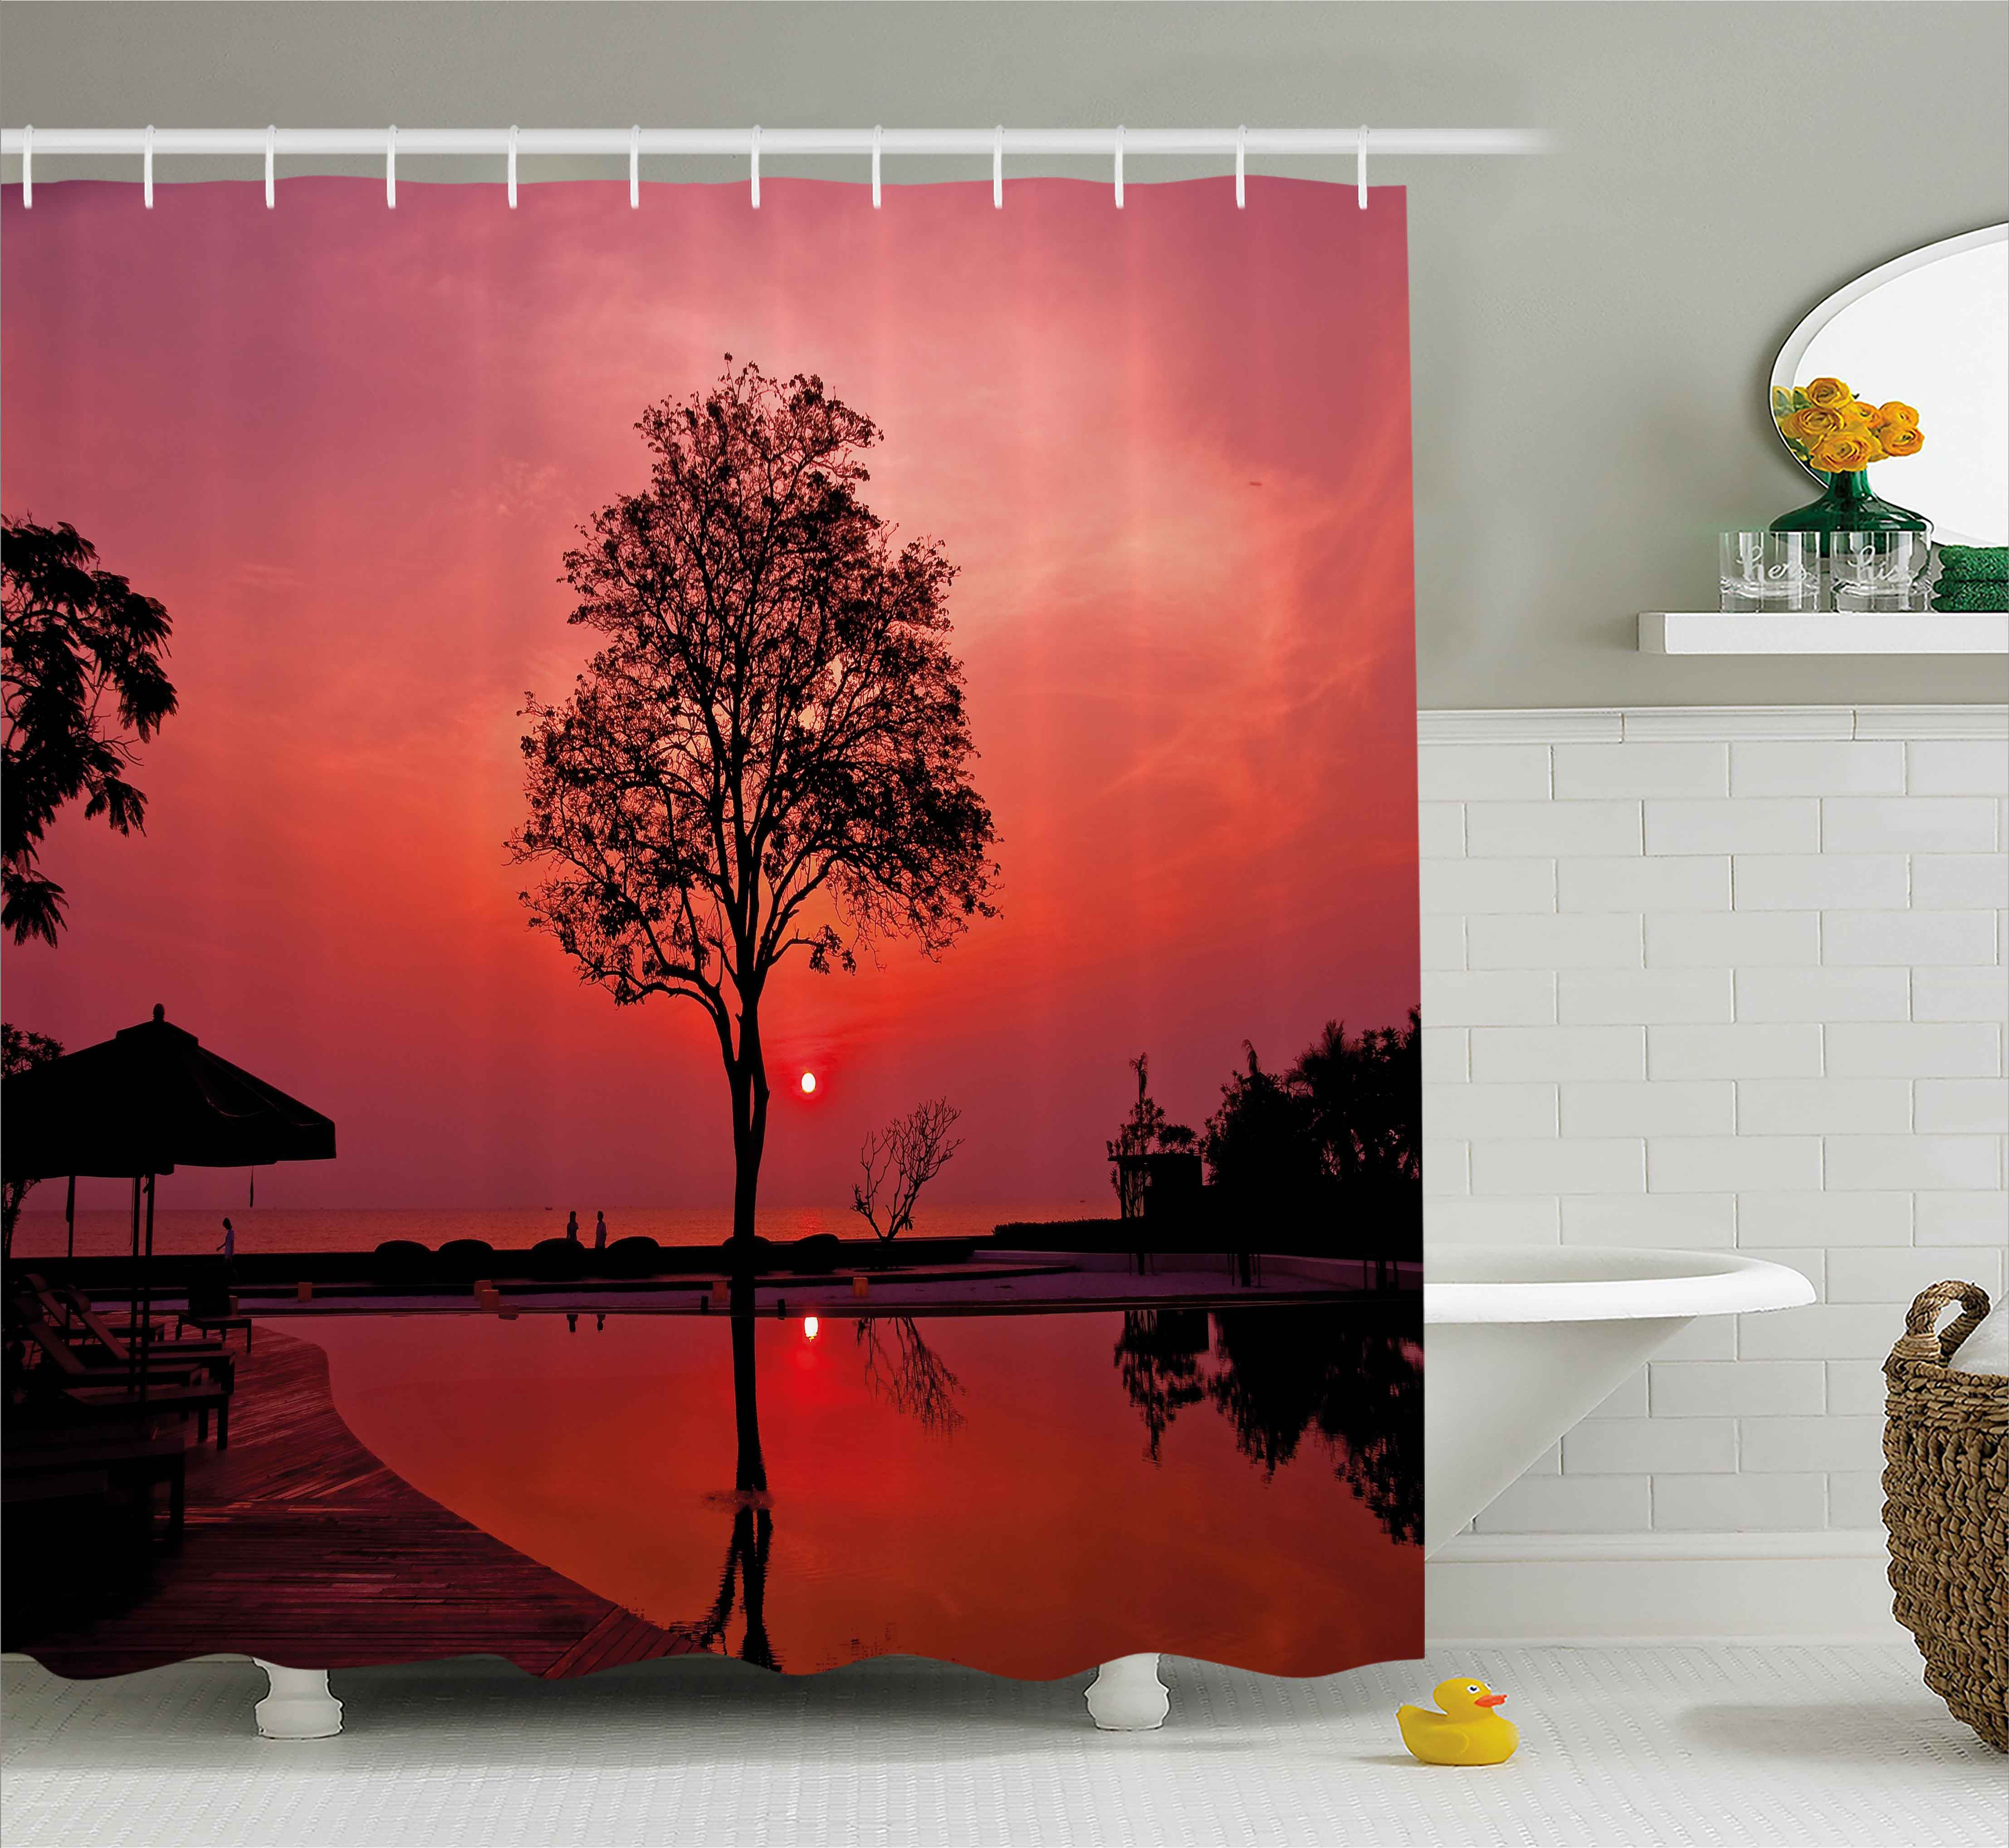 Sunrise Shower Curtain, Silhouette of Misty Twilight Sky with Tree and Nature Reflections Exotic Image, Fabric Bathroom Set with Hooks, 69W X 70L Inches, Black Ruby, by Ambesonne